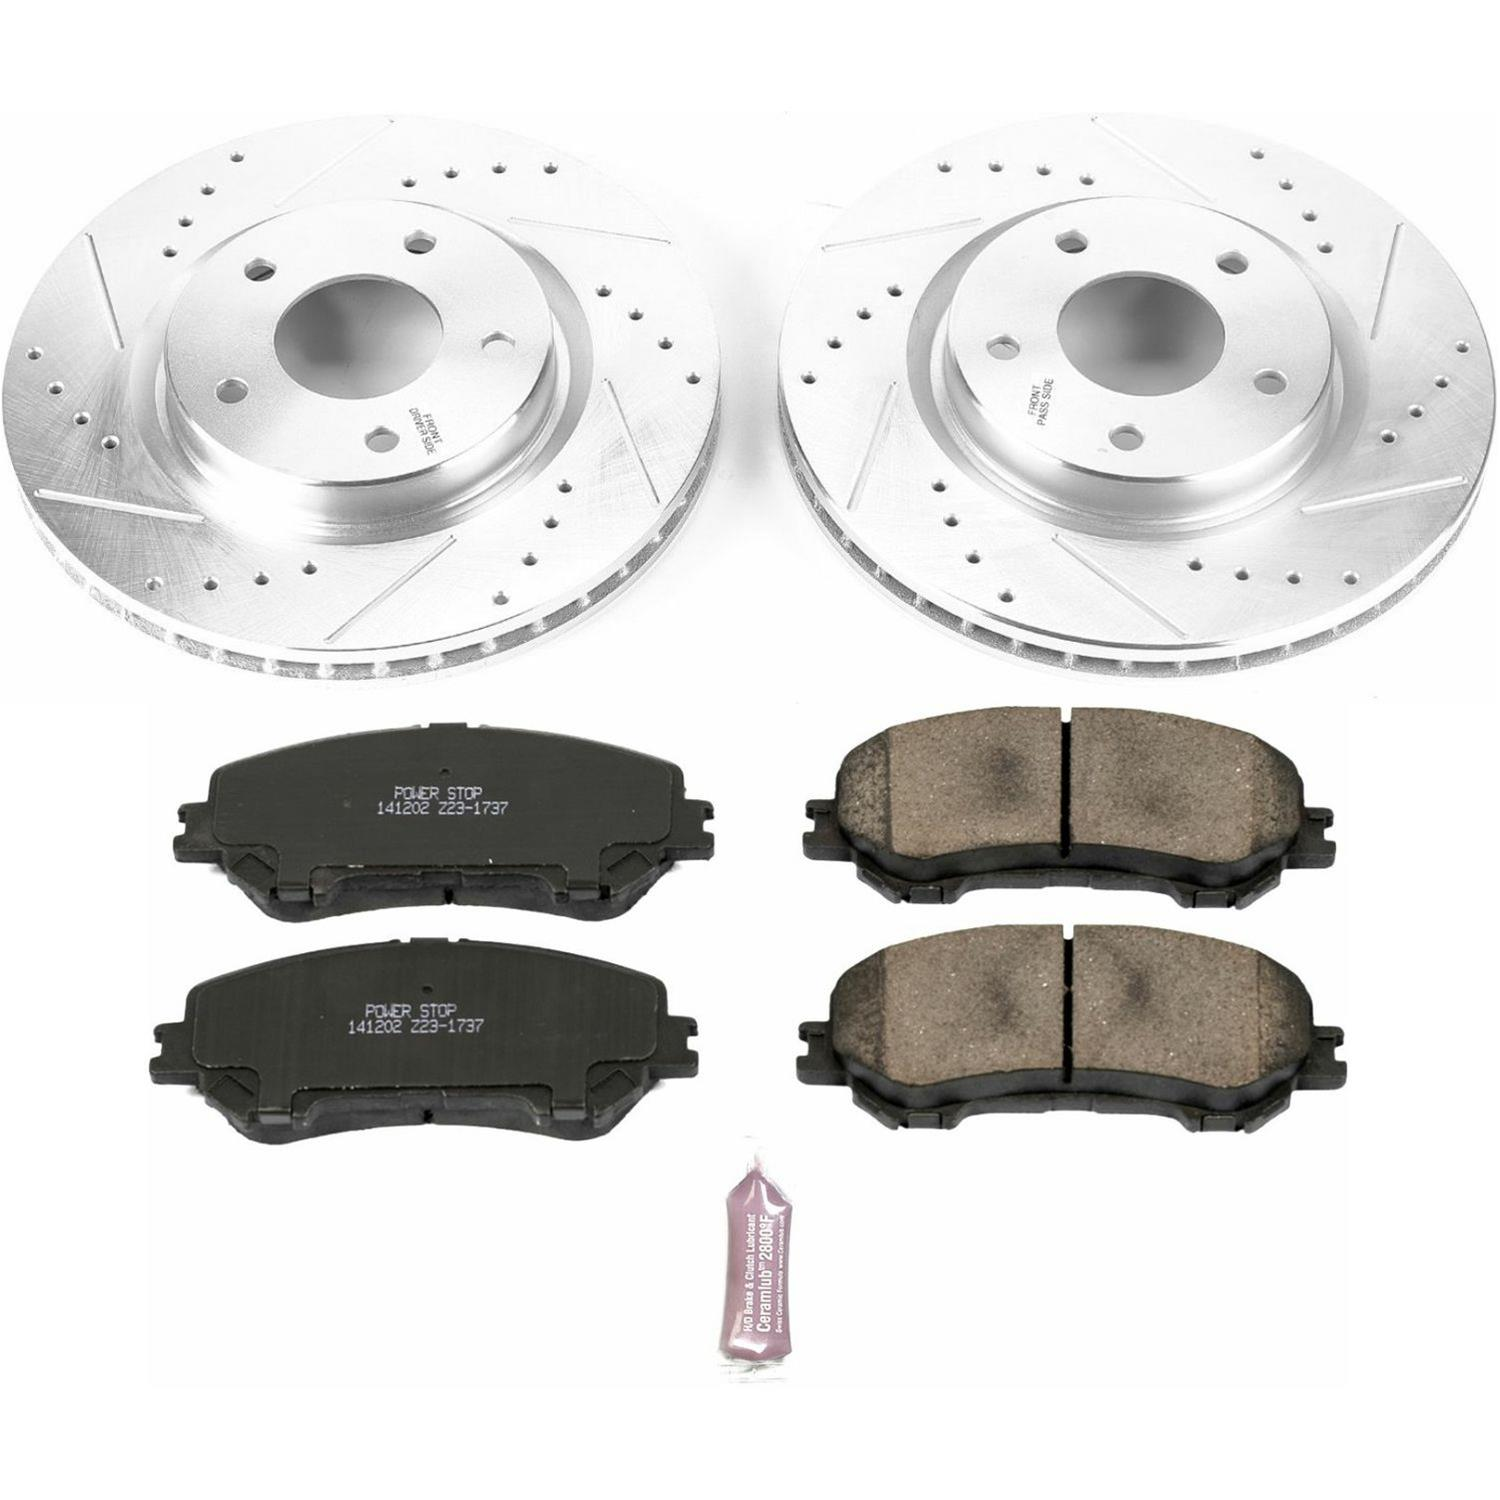 Power Stop K7035 Front /& Rear Brake Kit with Drilled//Slotted Brake Rotors and Z23 Evolution Ceramic Brake Pads